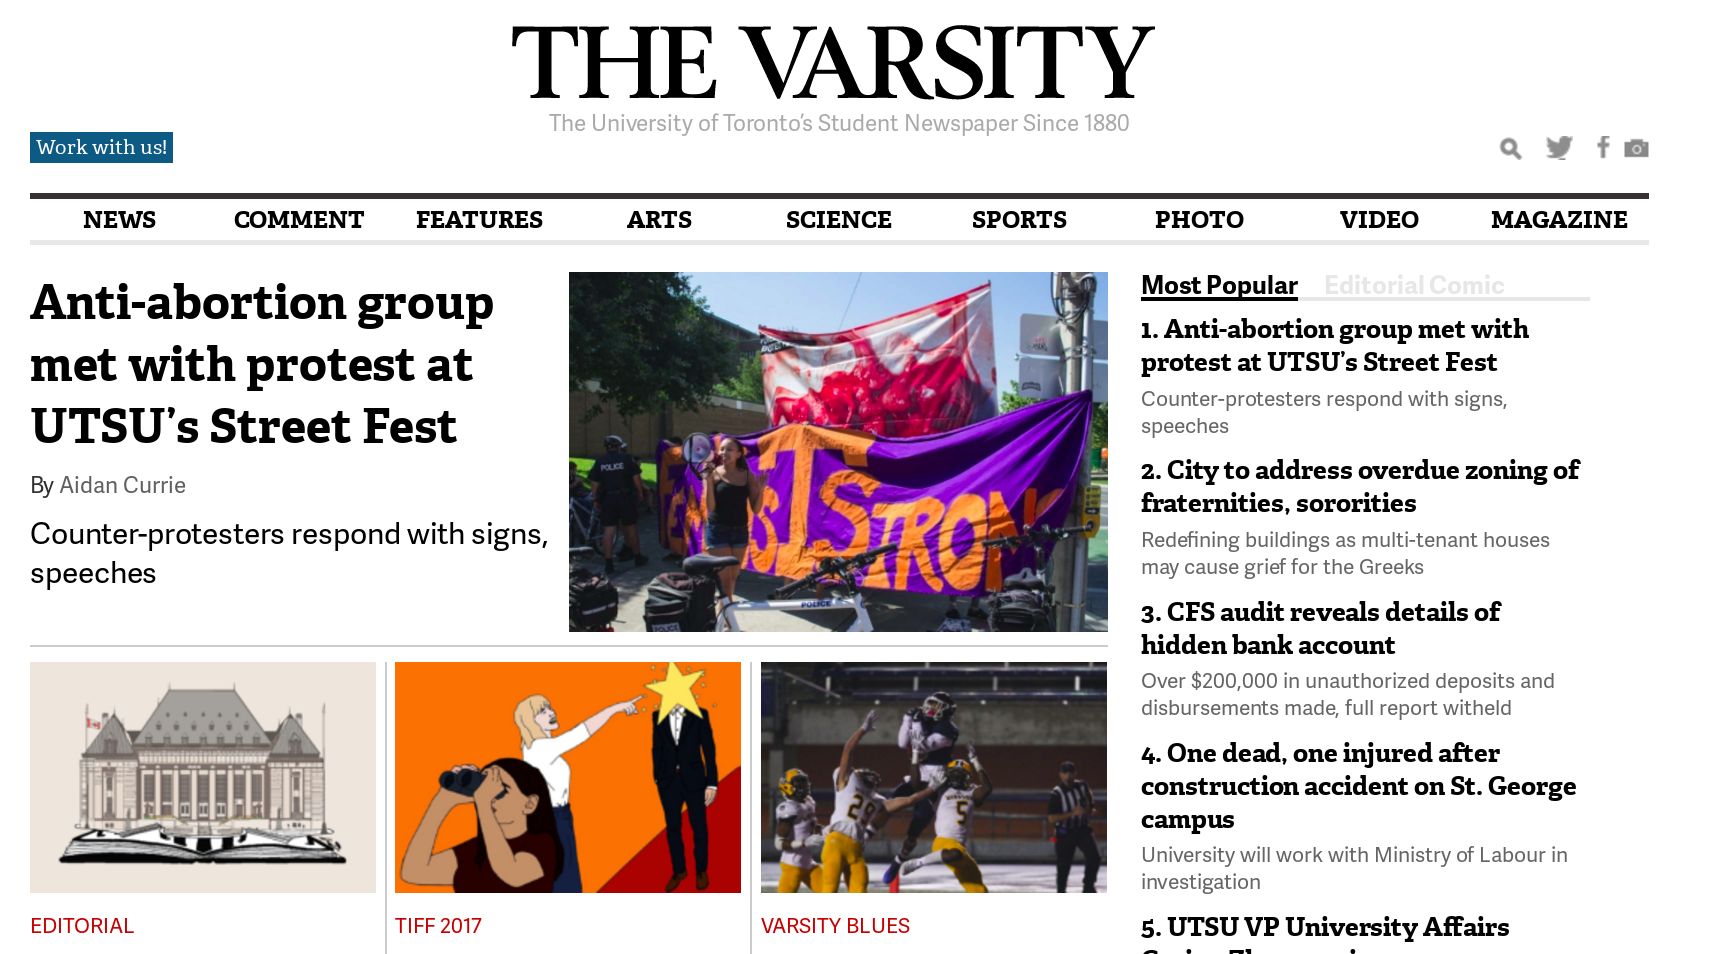 TheVarsity.ca screenshot of front page article about UTSFL